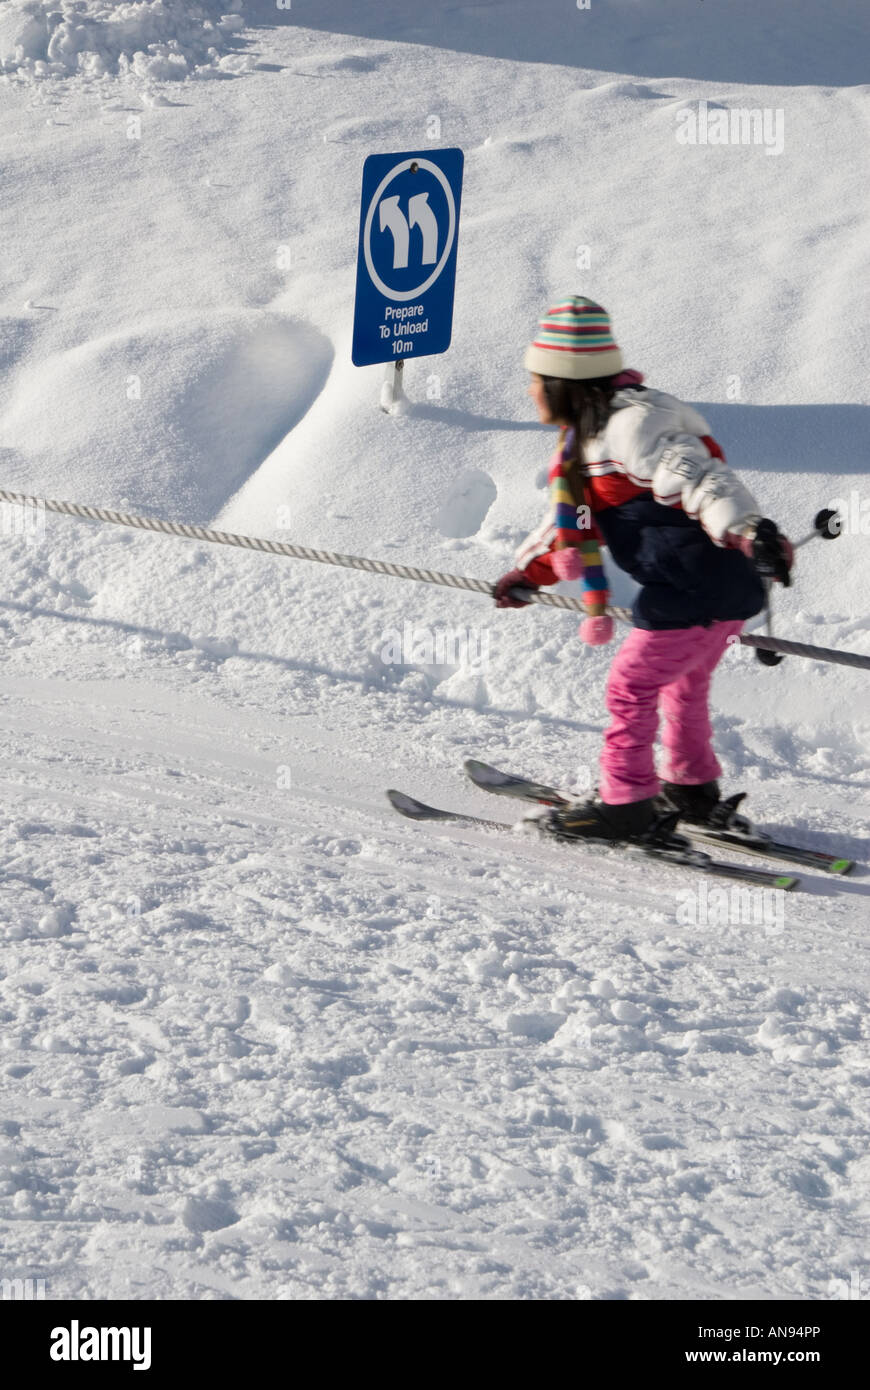 Using Ski Rope Stock Photos Images Alamy Tow Harness Young Girl At Resort Image